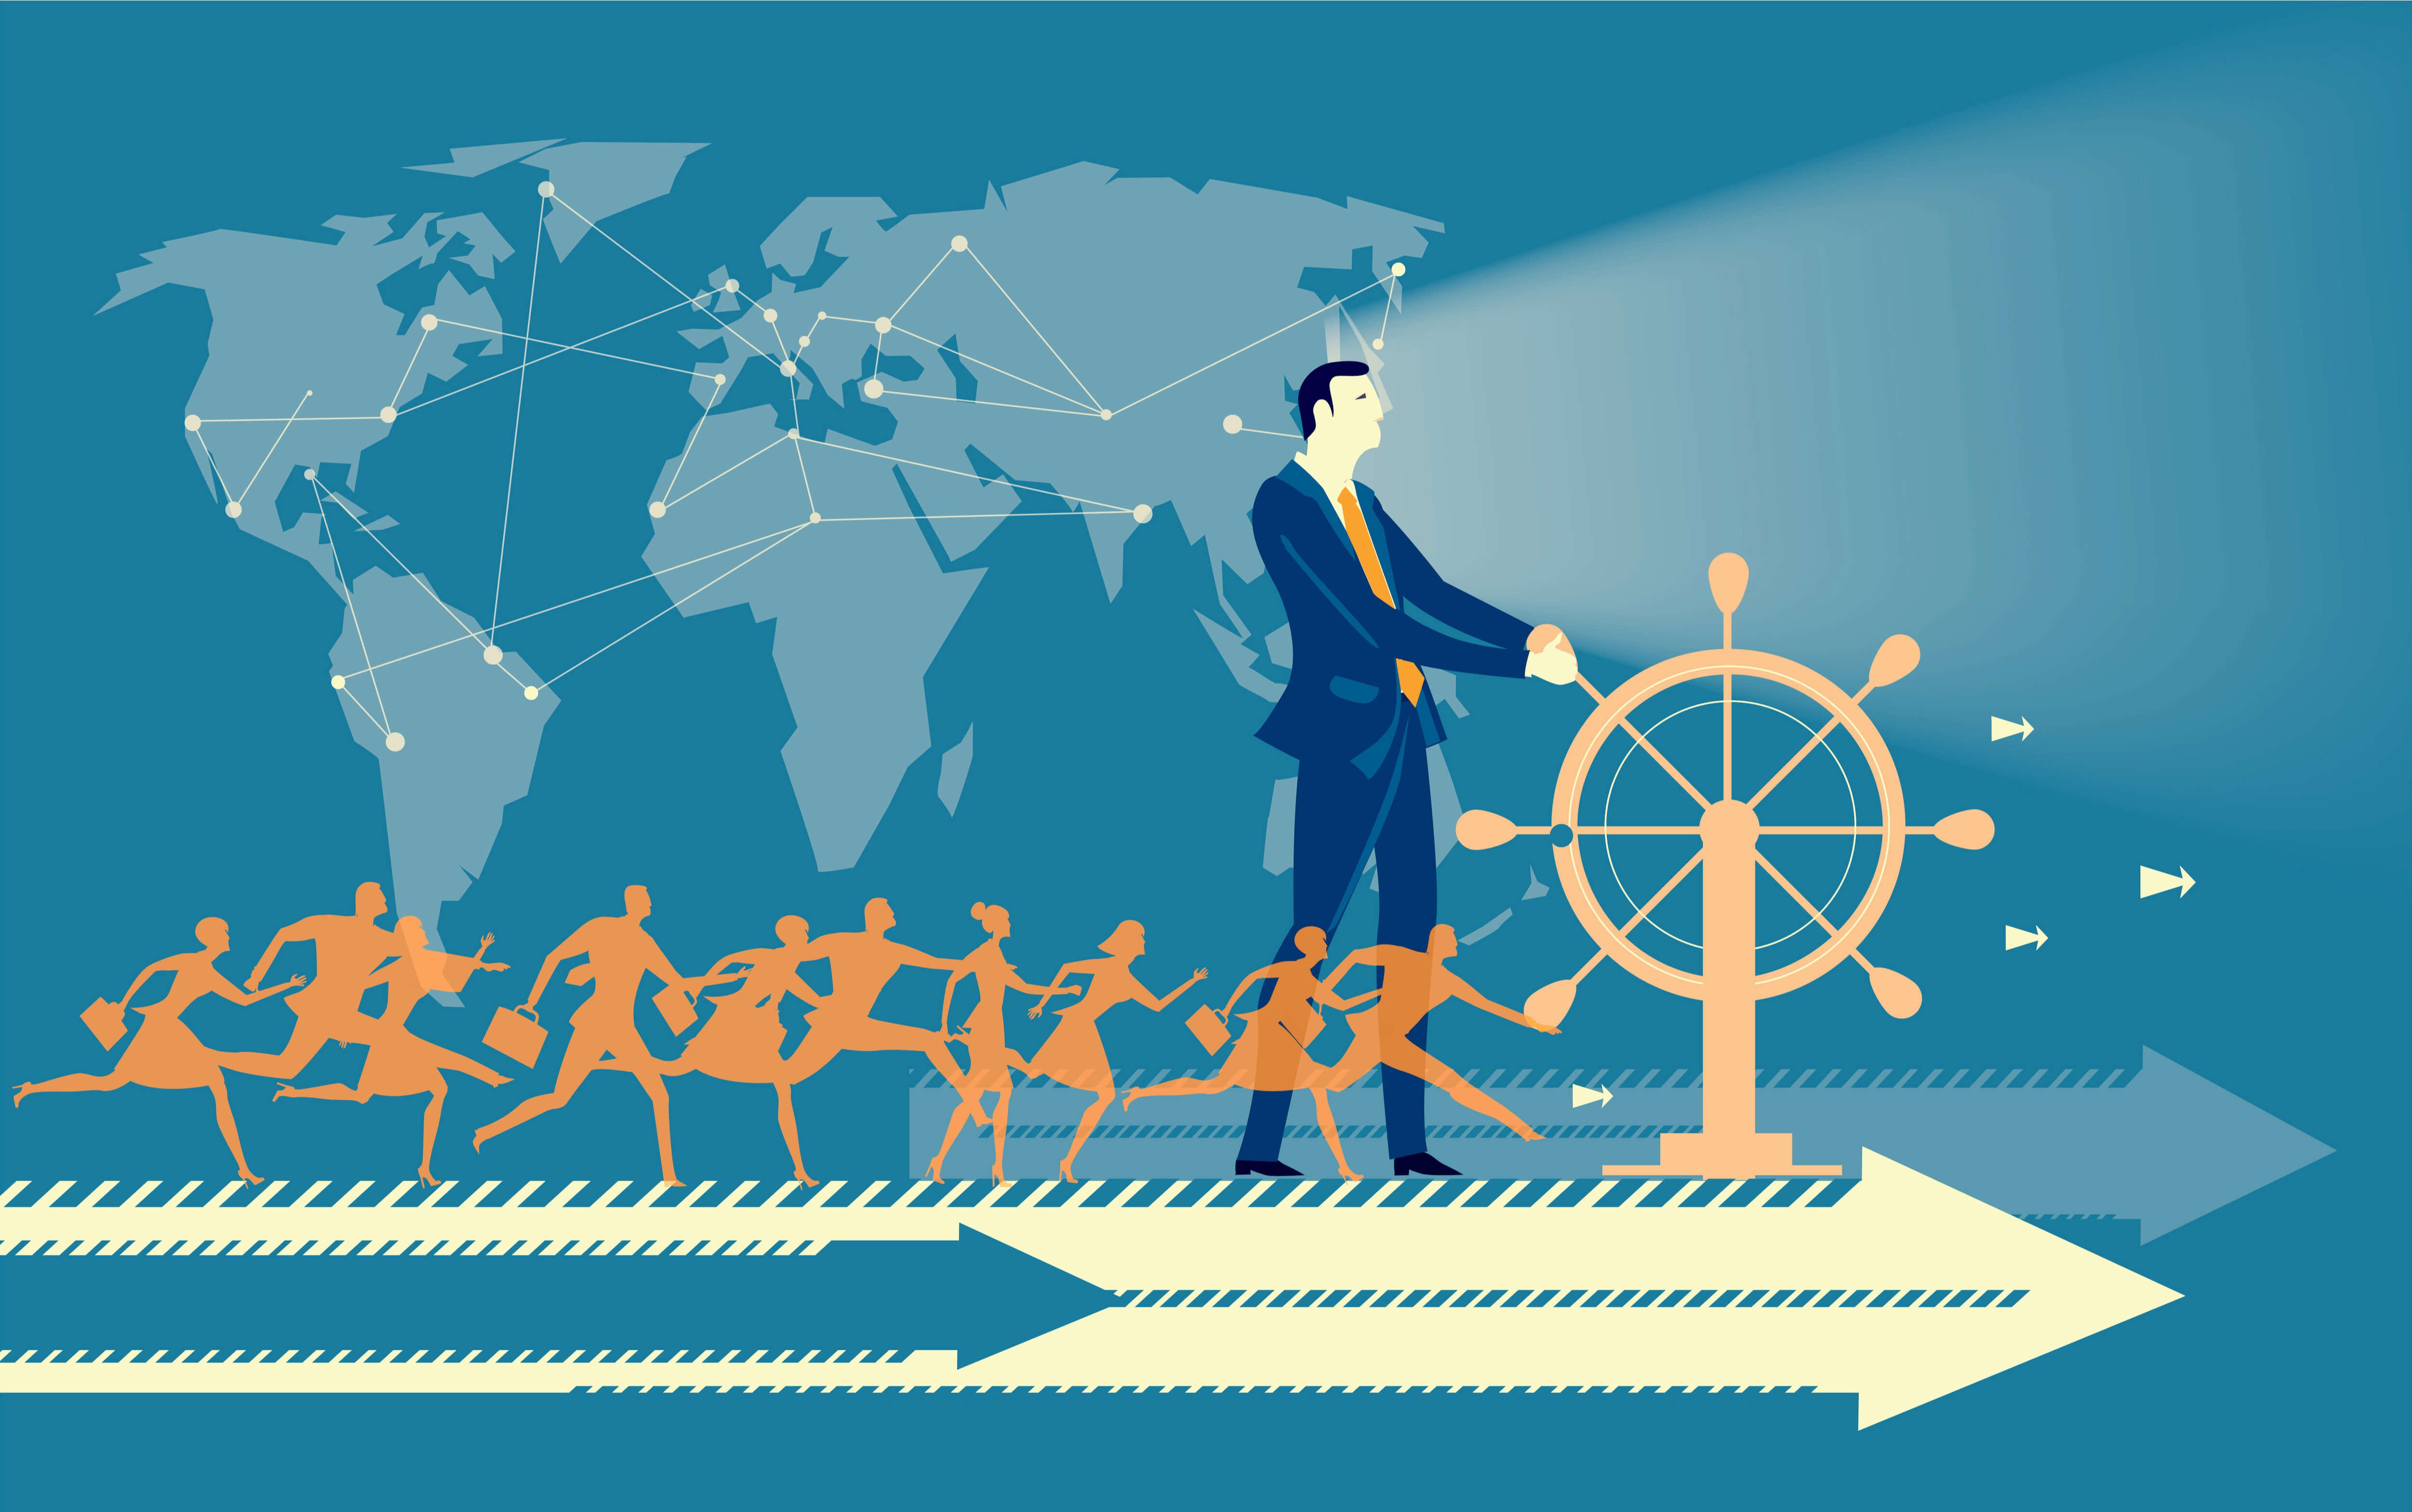 Graphic of business leader in a blue suit seen steering a ship with employees on board and world map in the background